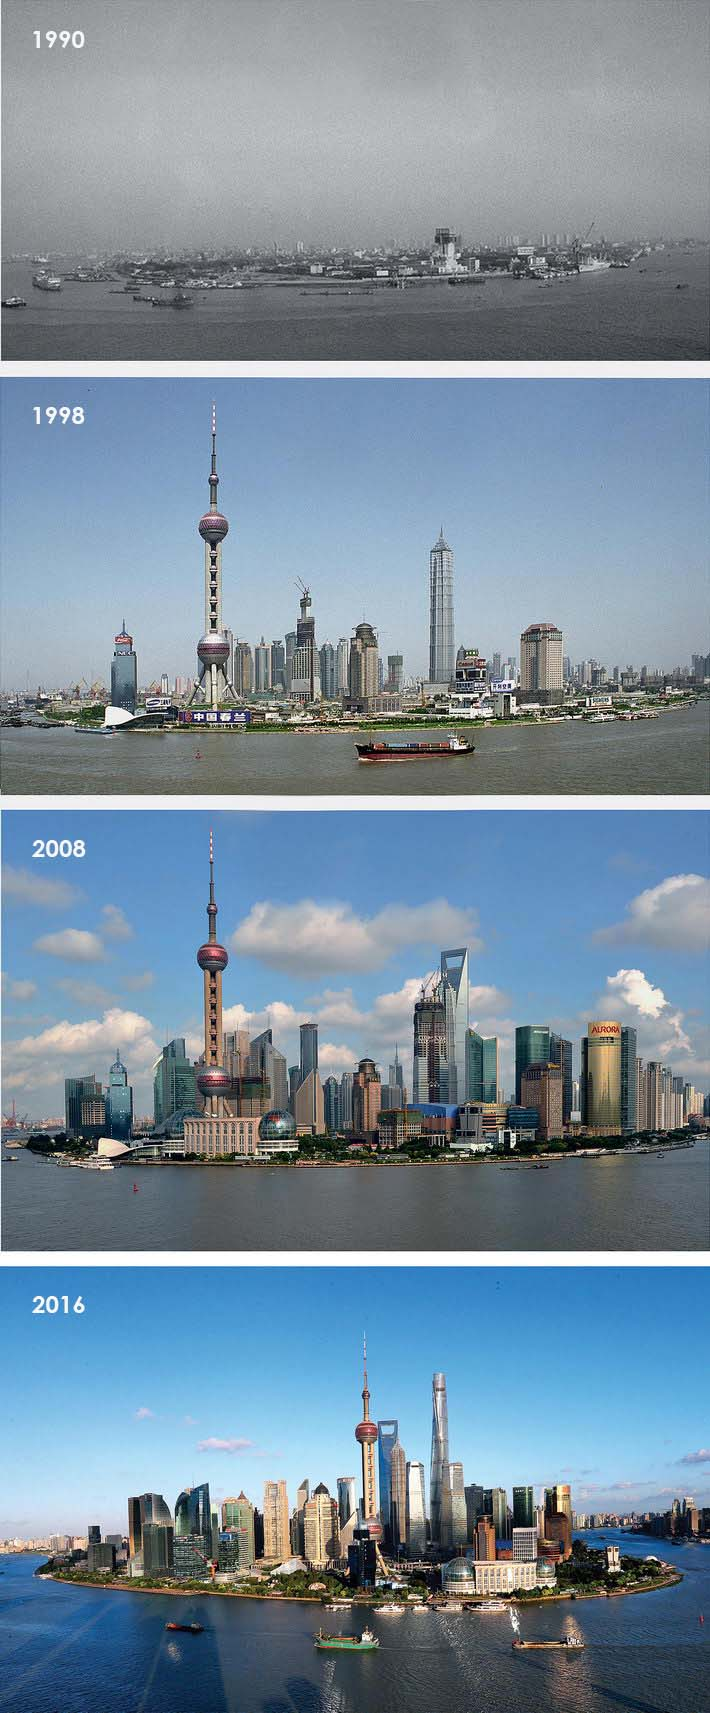 Photos depict the transformation of Shanghai's Lujiazui area from 1990 to 2016. The first three photos were shot by Yao Jianliang, and the last by Xu Wanglin.